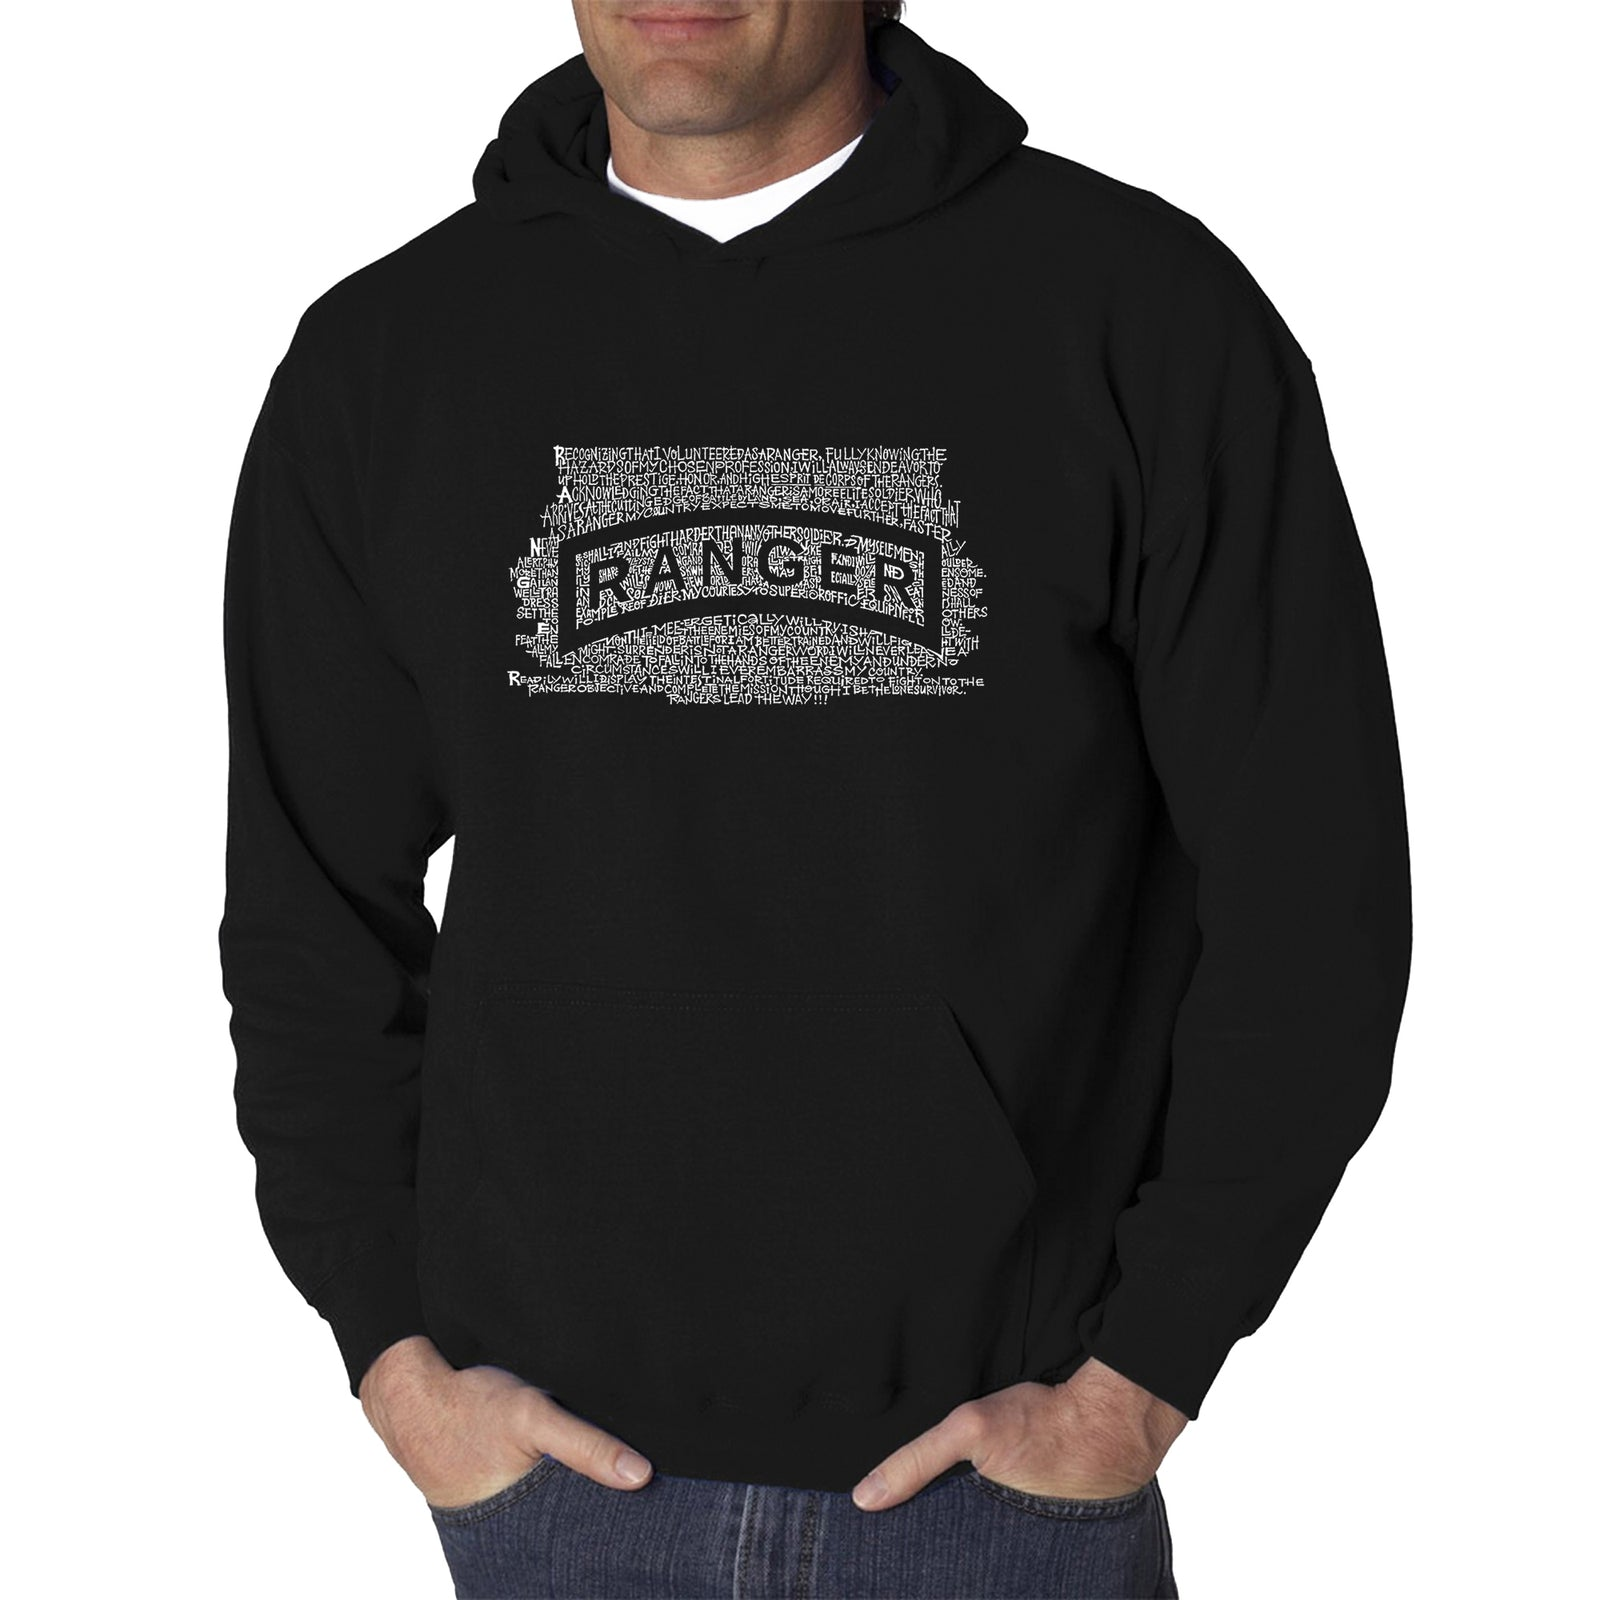 Men's Hooded Sweatshirt - The US Ranger Creed